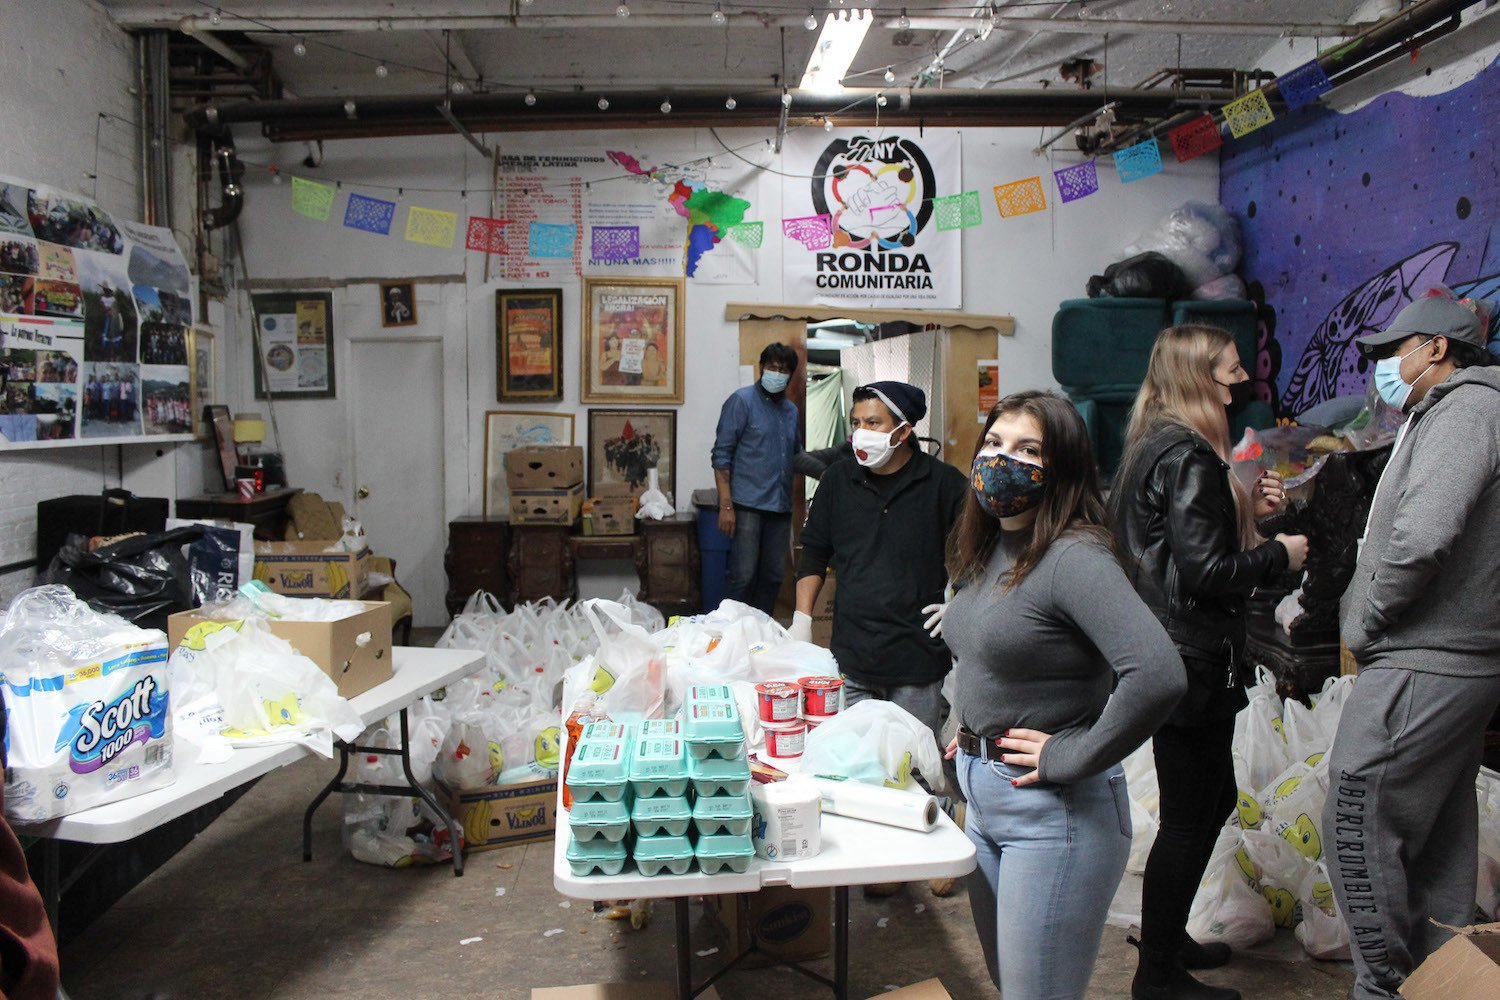 Volunteers working at the food distribution rally at the Red de Pueblos Transnacionales headquarters in the South Bronx on March 20. Volunteers were both from Red de Pueblos Transnacionales and the American Indian Community House. March 2021